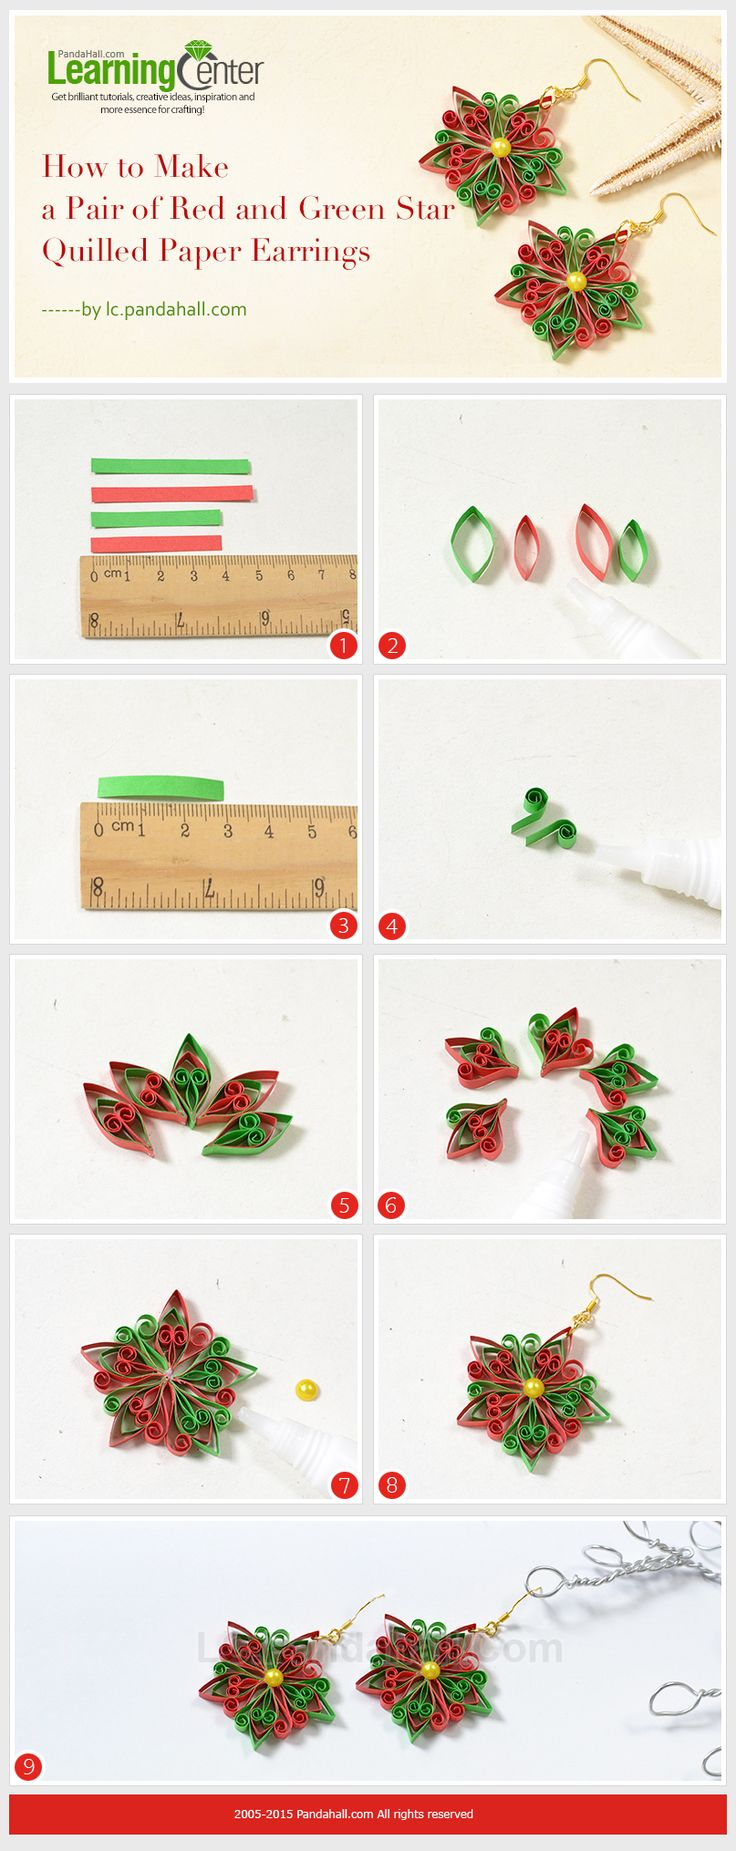 How to Make a Pair of Red and Green Star Quilled Paper Earrings